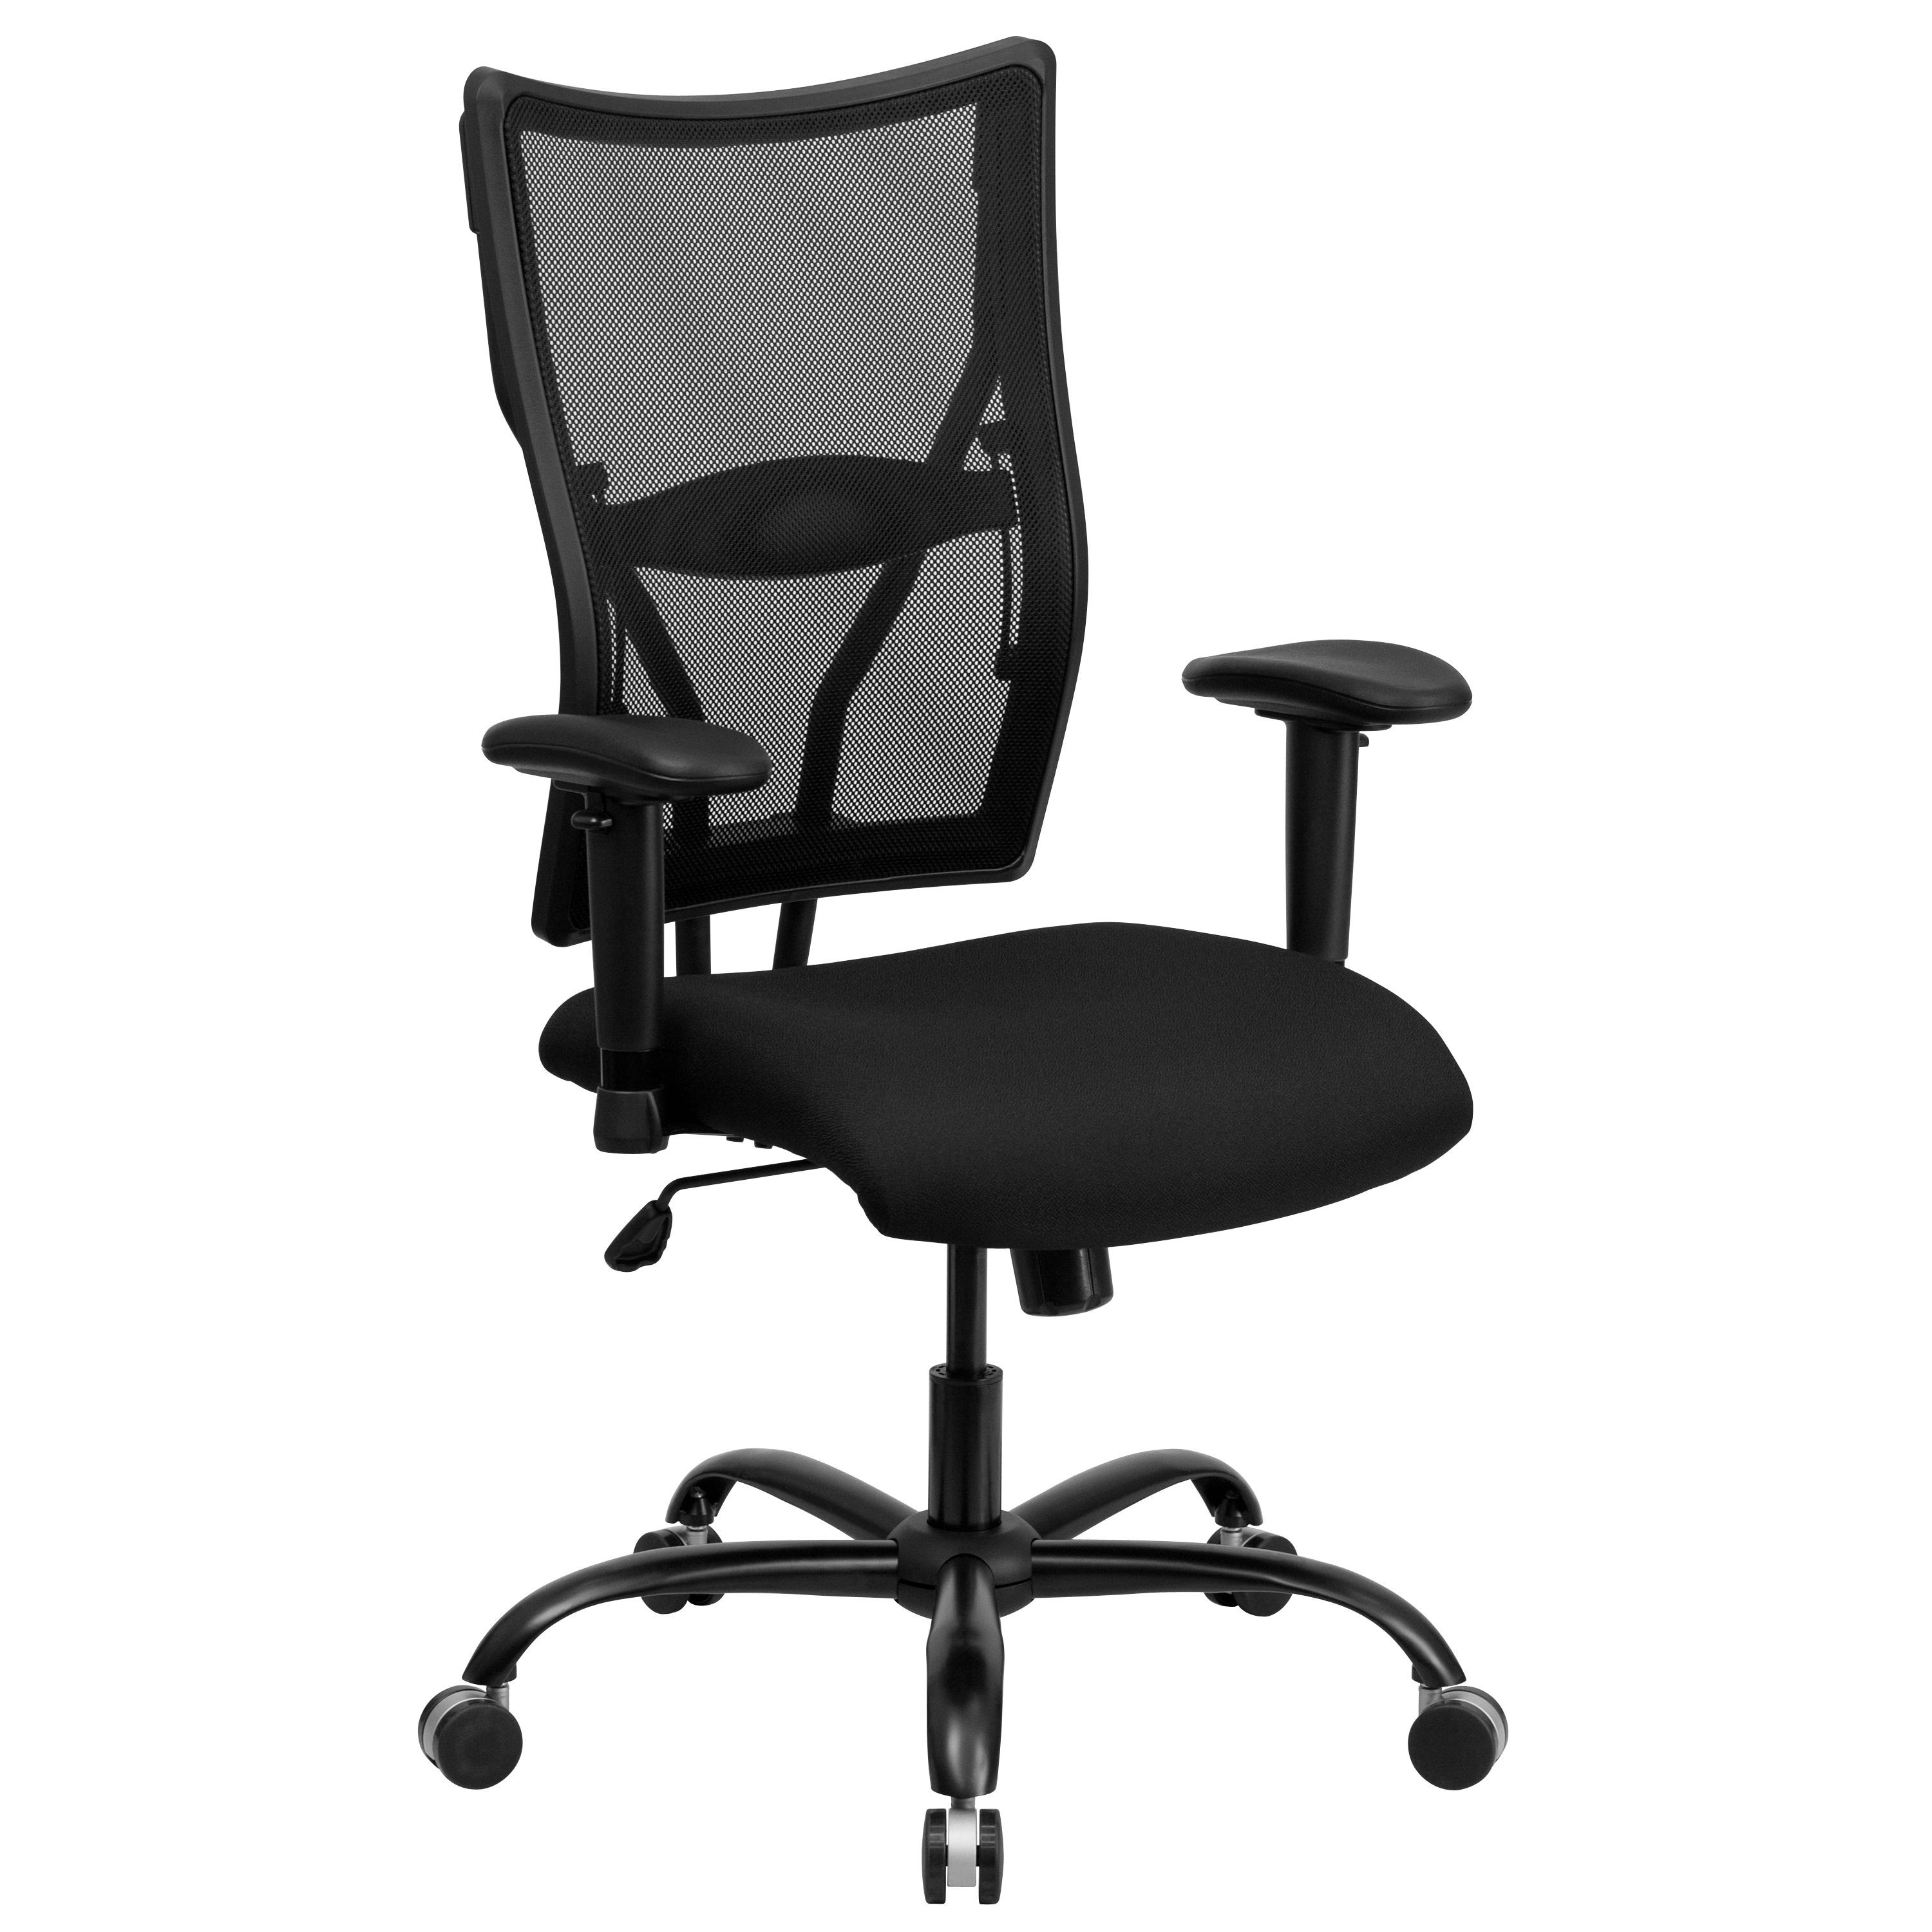 Flash Furniture WL-5029SYG-A-GG HERCULES Series Big & Tall Black Mesh Office Chair with Arms, 400 Lb. Capacity